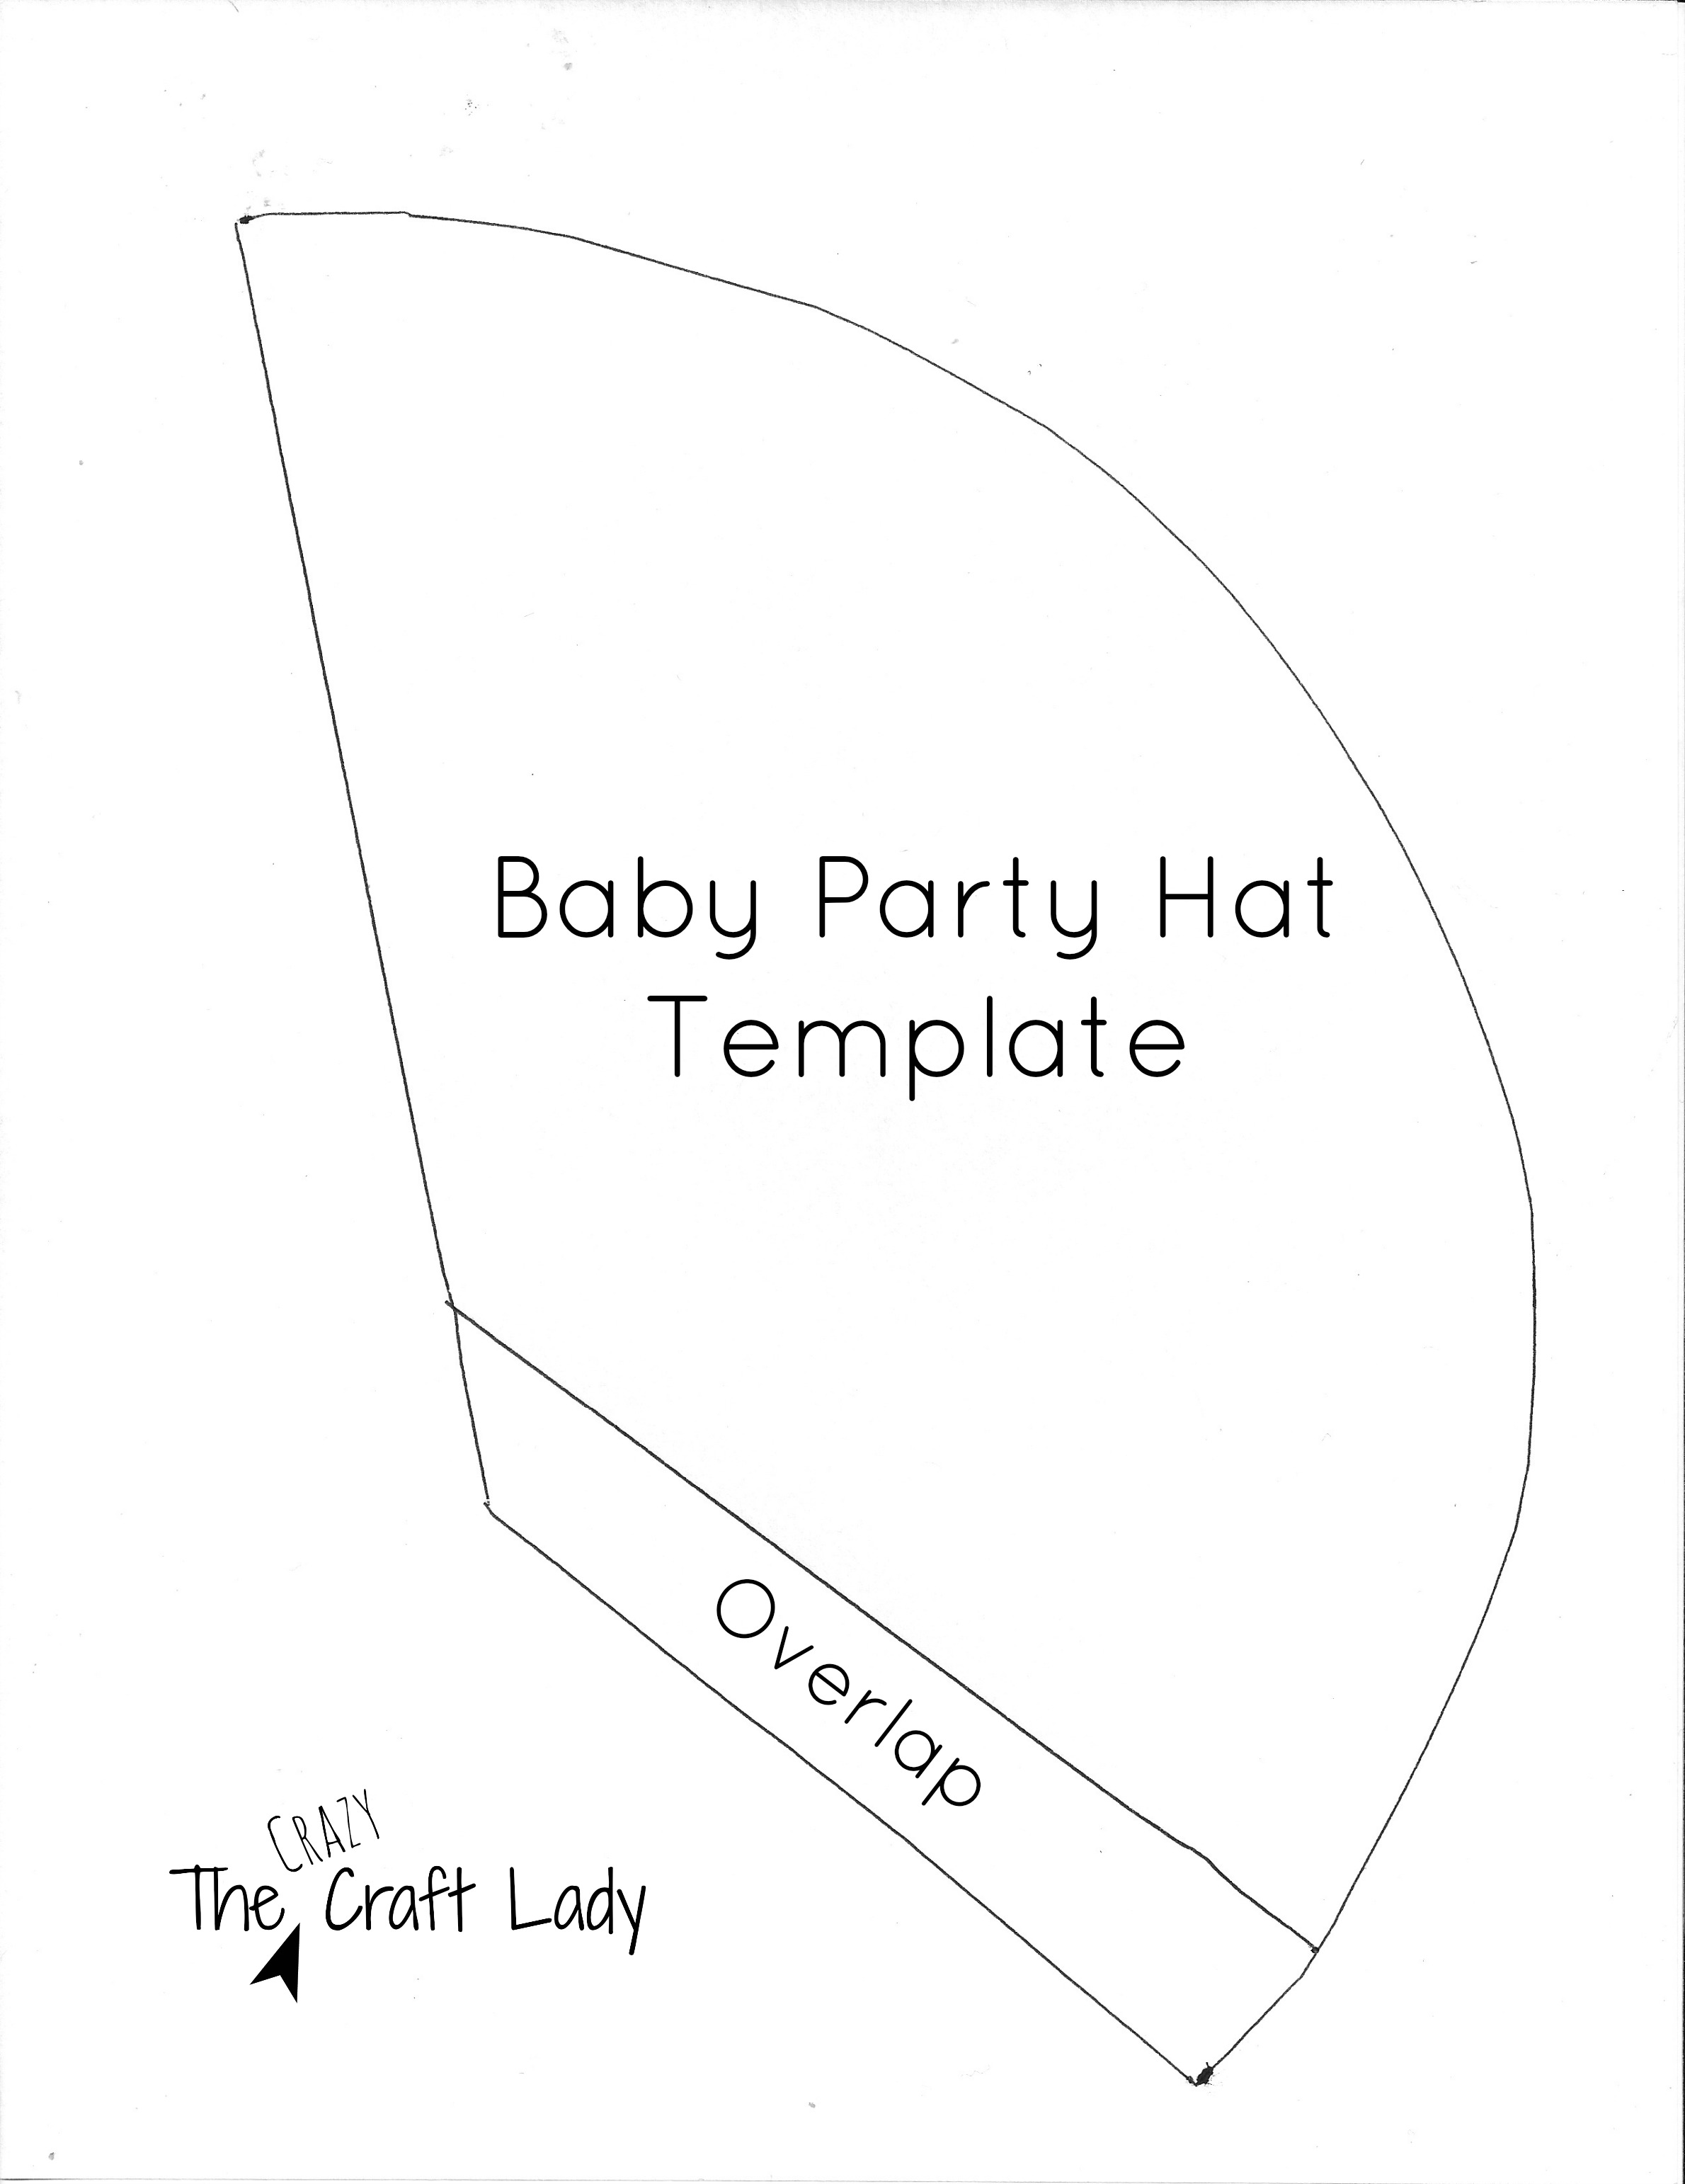 Baby Party Hats and FREE Printable Template   The Crazy Craft Lady